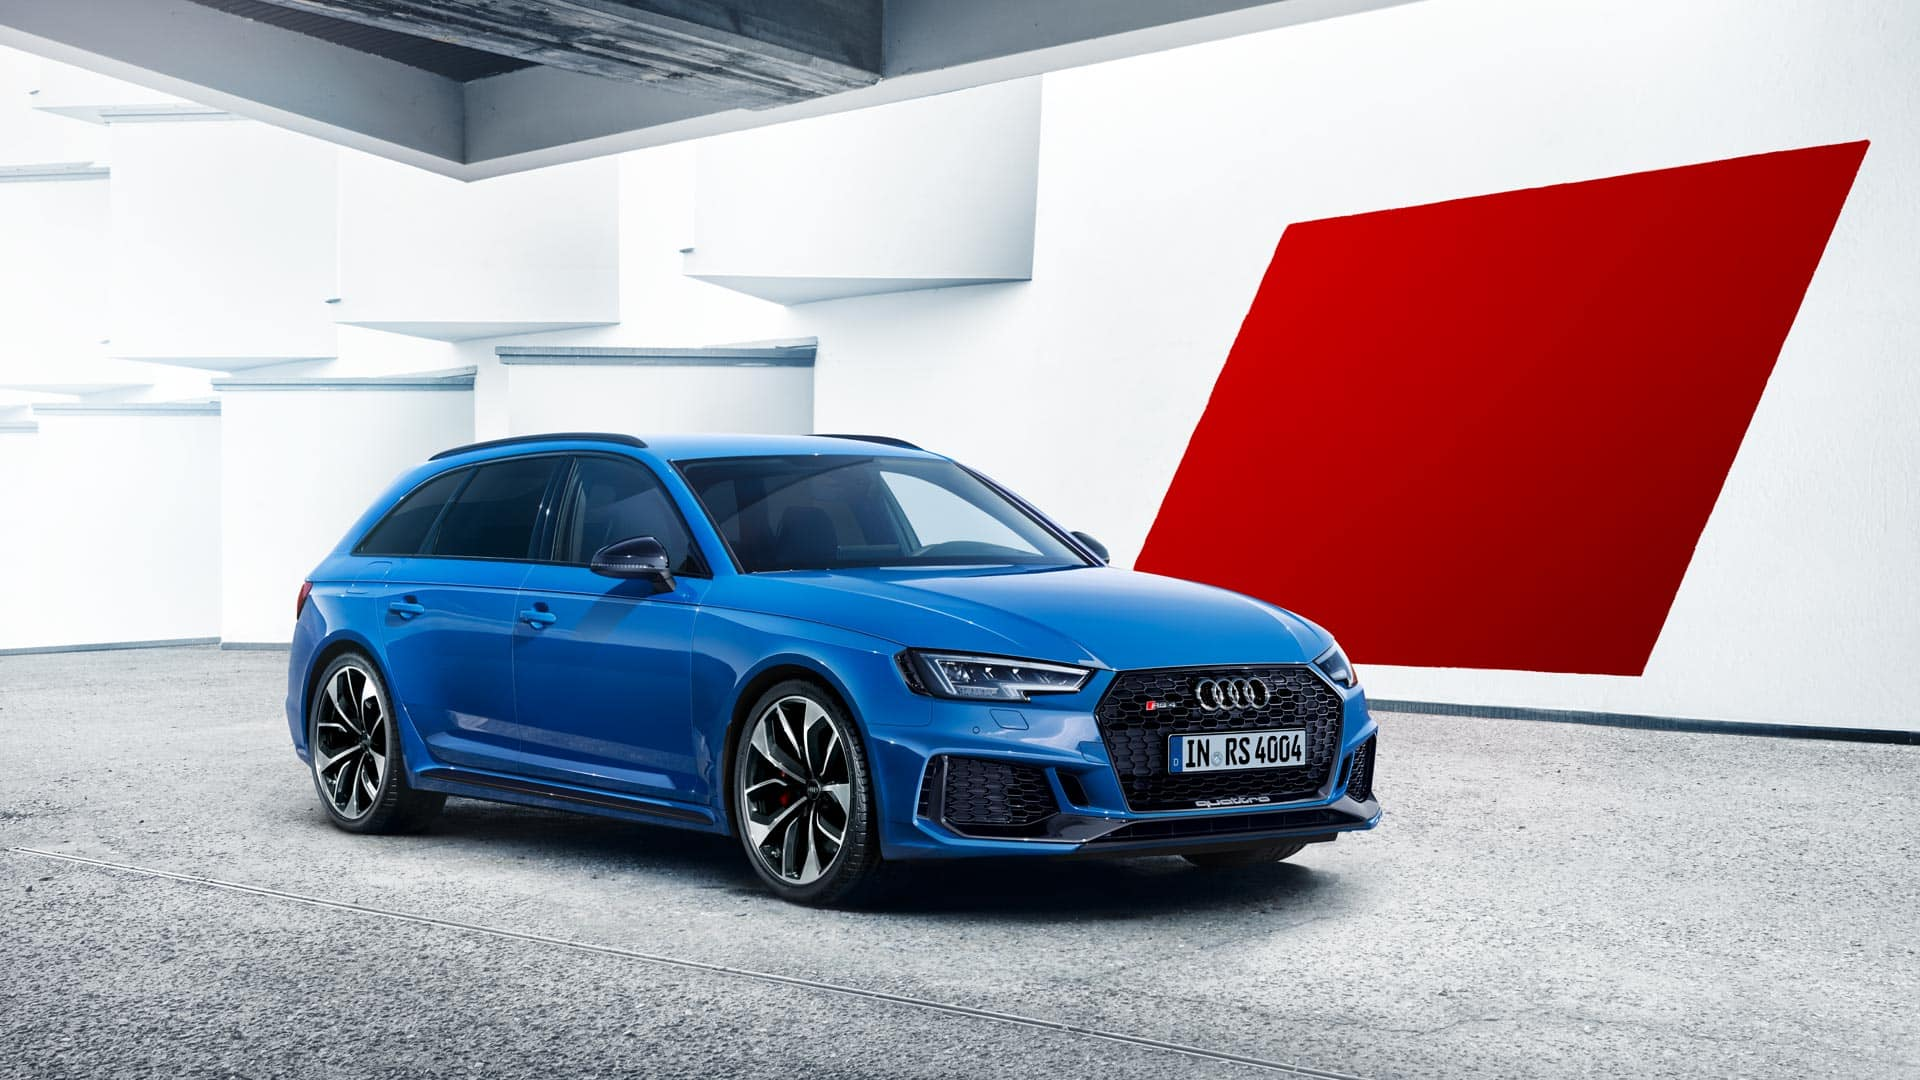 audi rs 4 avant genuine euphoria audi australia audi australia official website luxury. Black Bedroom Furniture Sets. Home Design Ideas